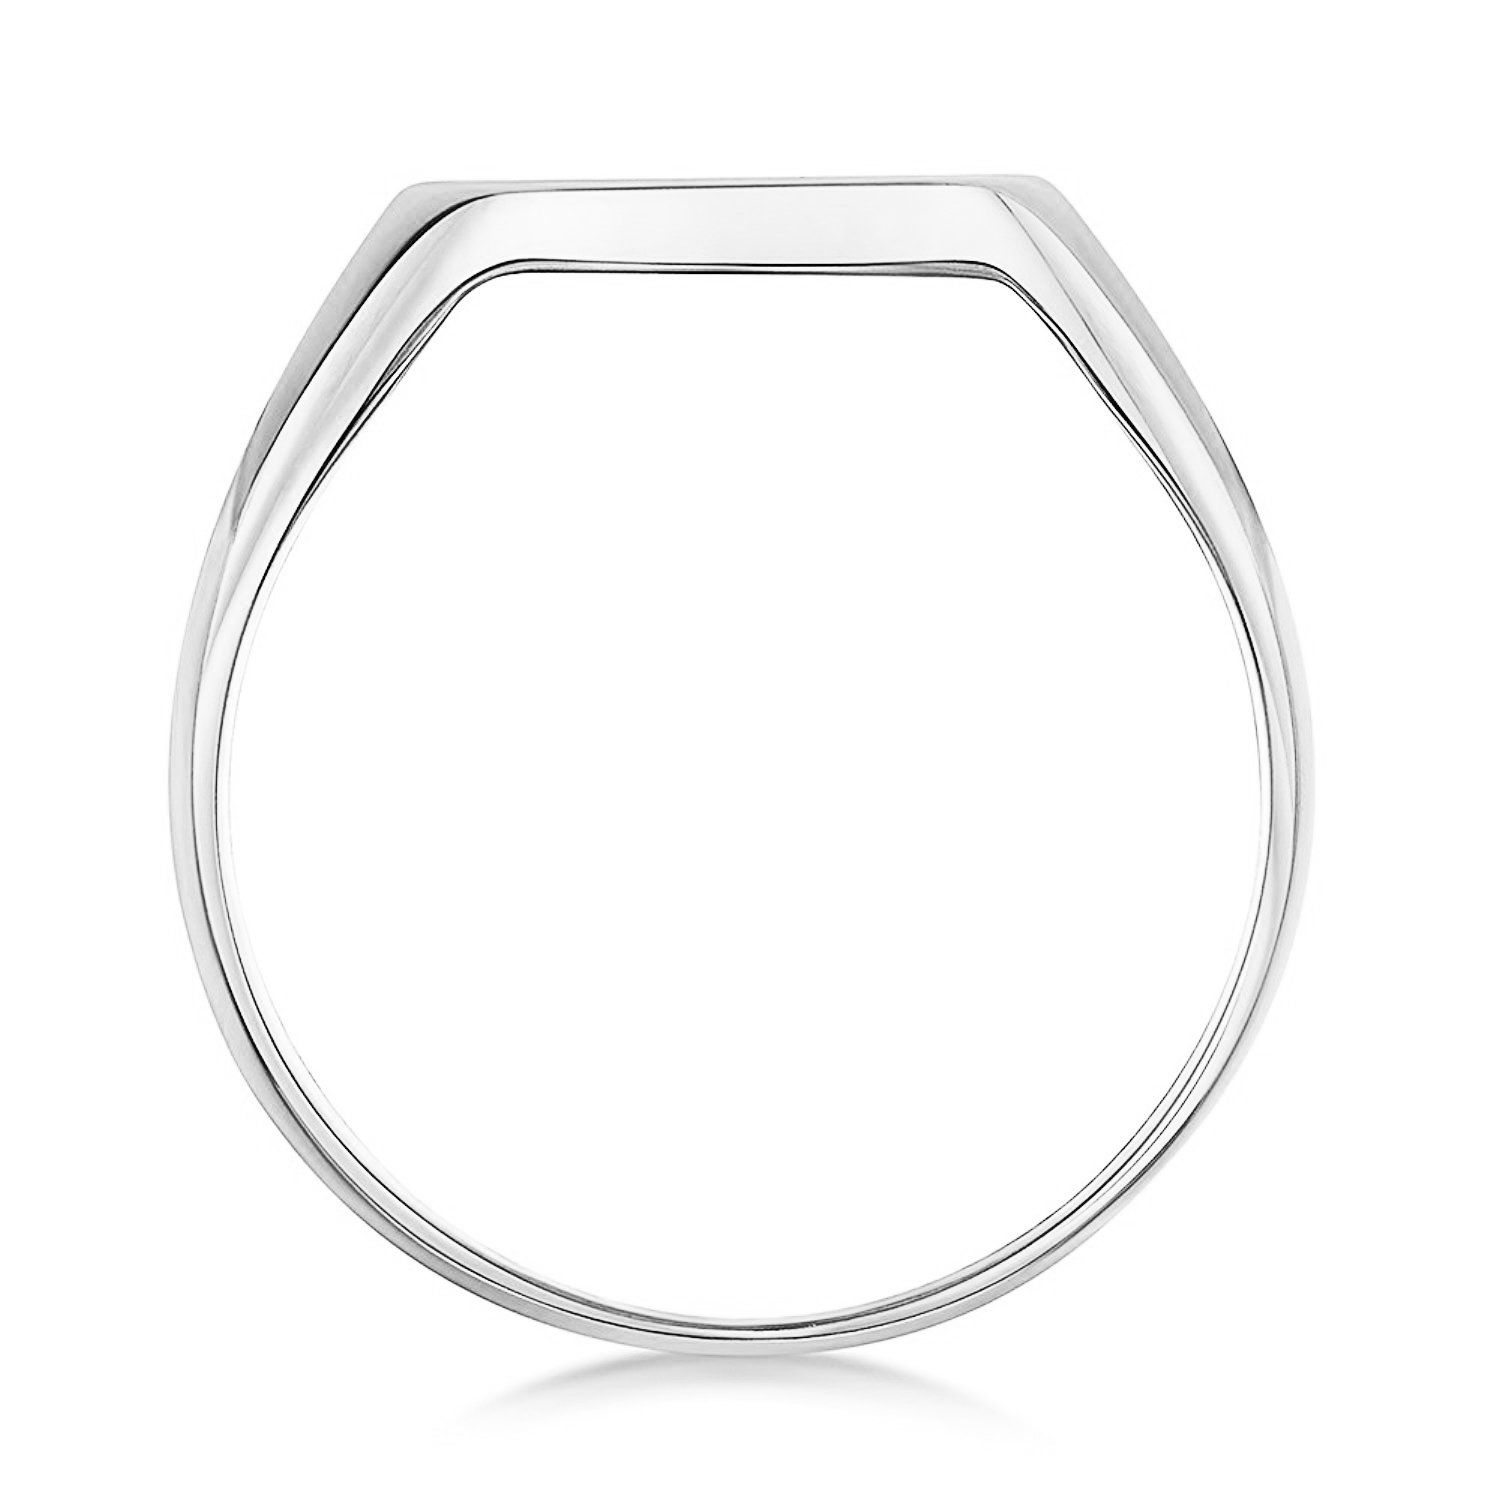 Unisex Sterling Silver Cushion Shape Heavy Weight Polished Signet Ring 12x12mm (6) by LANDA JEWEL (Image #4)